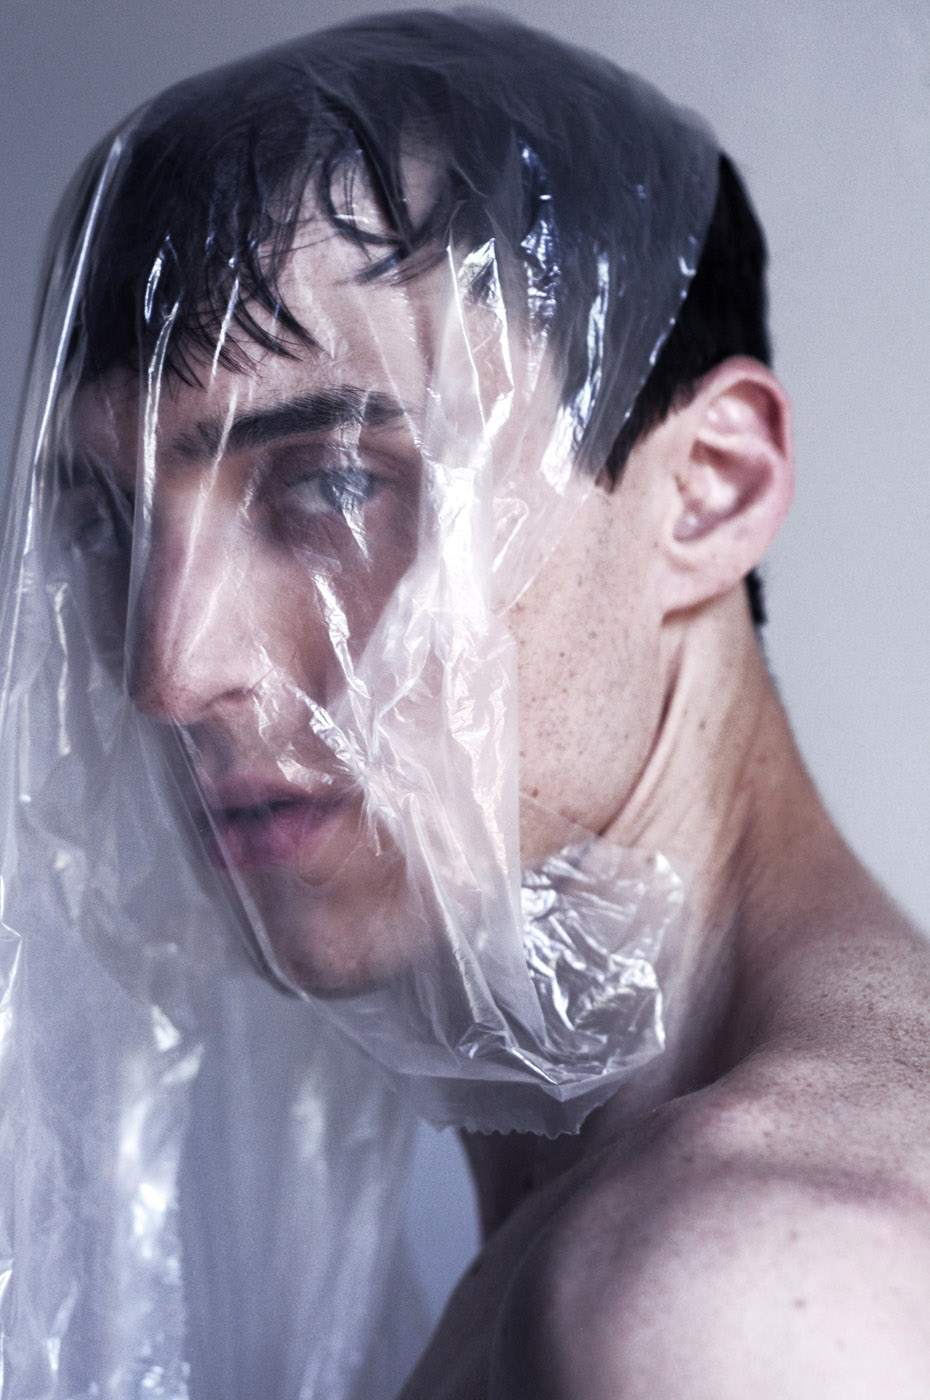 THE ART OF SELF PRESERVATION by Hadar Pitchon for CHASSEUR MAGAZINE